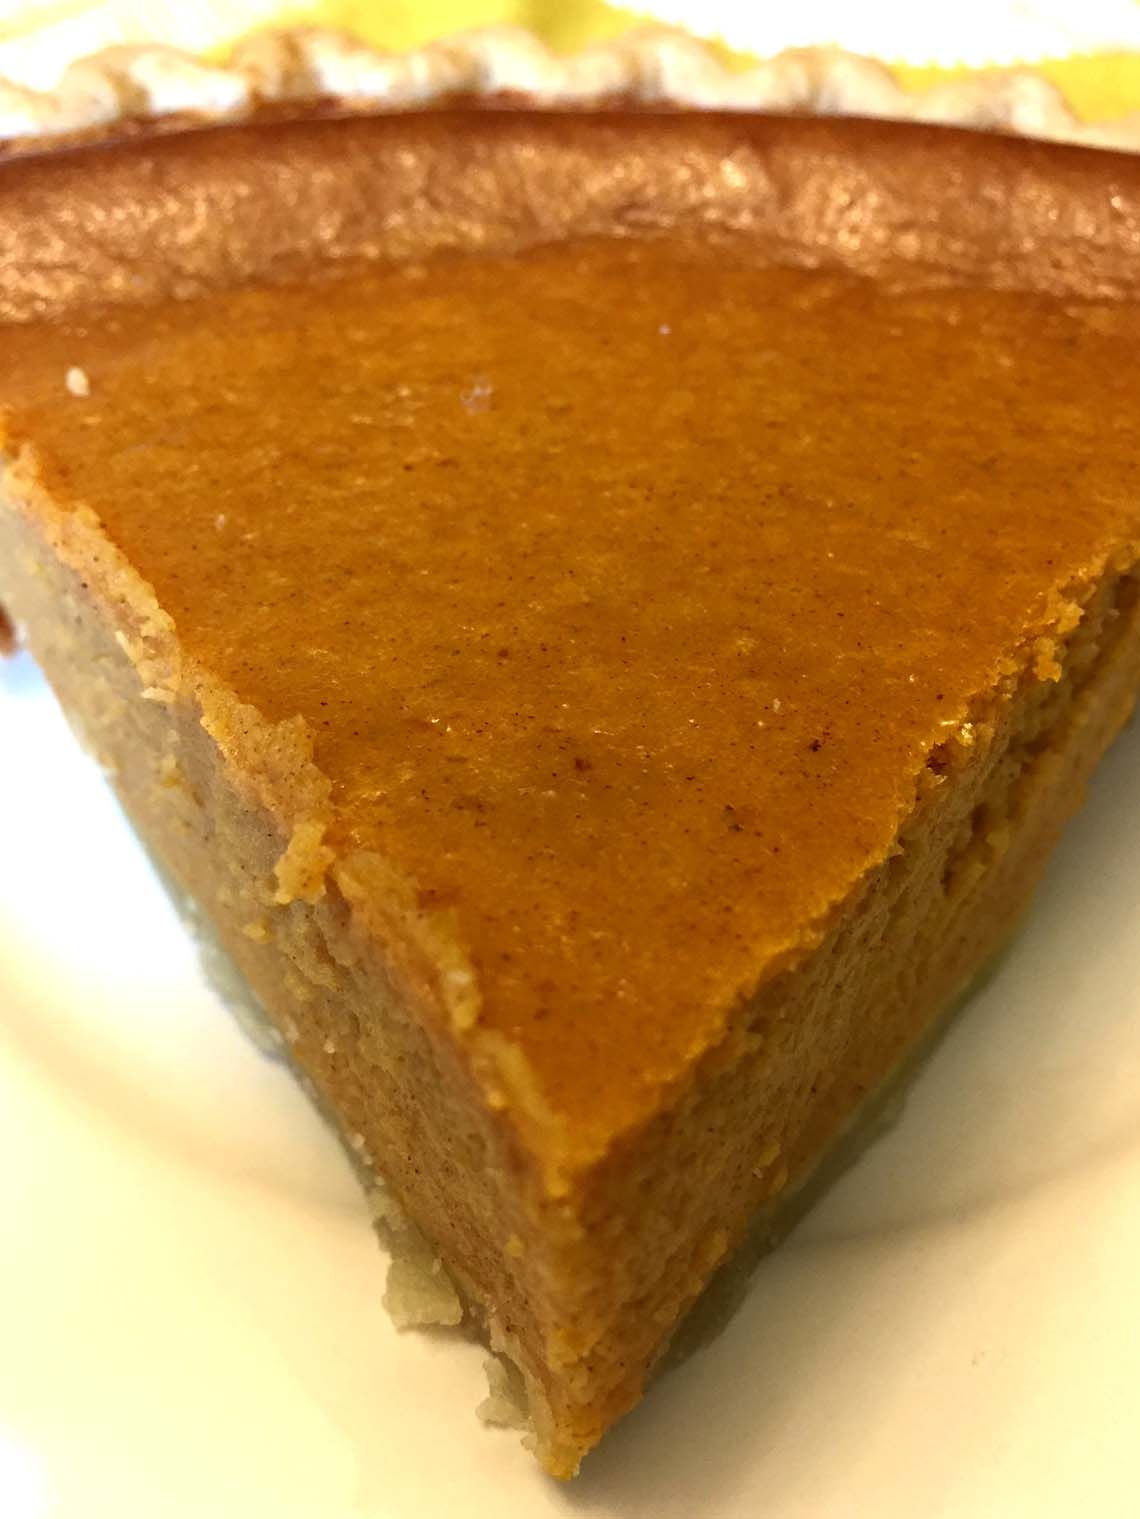 Easy Pumpkin Pie Recipe With Sweetened Condensed Milk Recipe Pumpkin Pie Recipe Easy Pumpkin Pie Recipe With Condensed Milk Pumpkin Pie Recipes